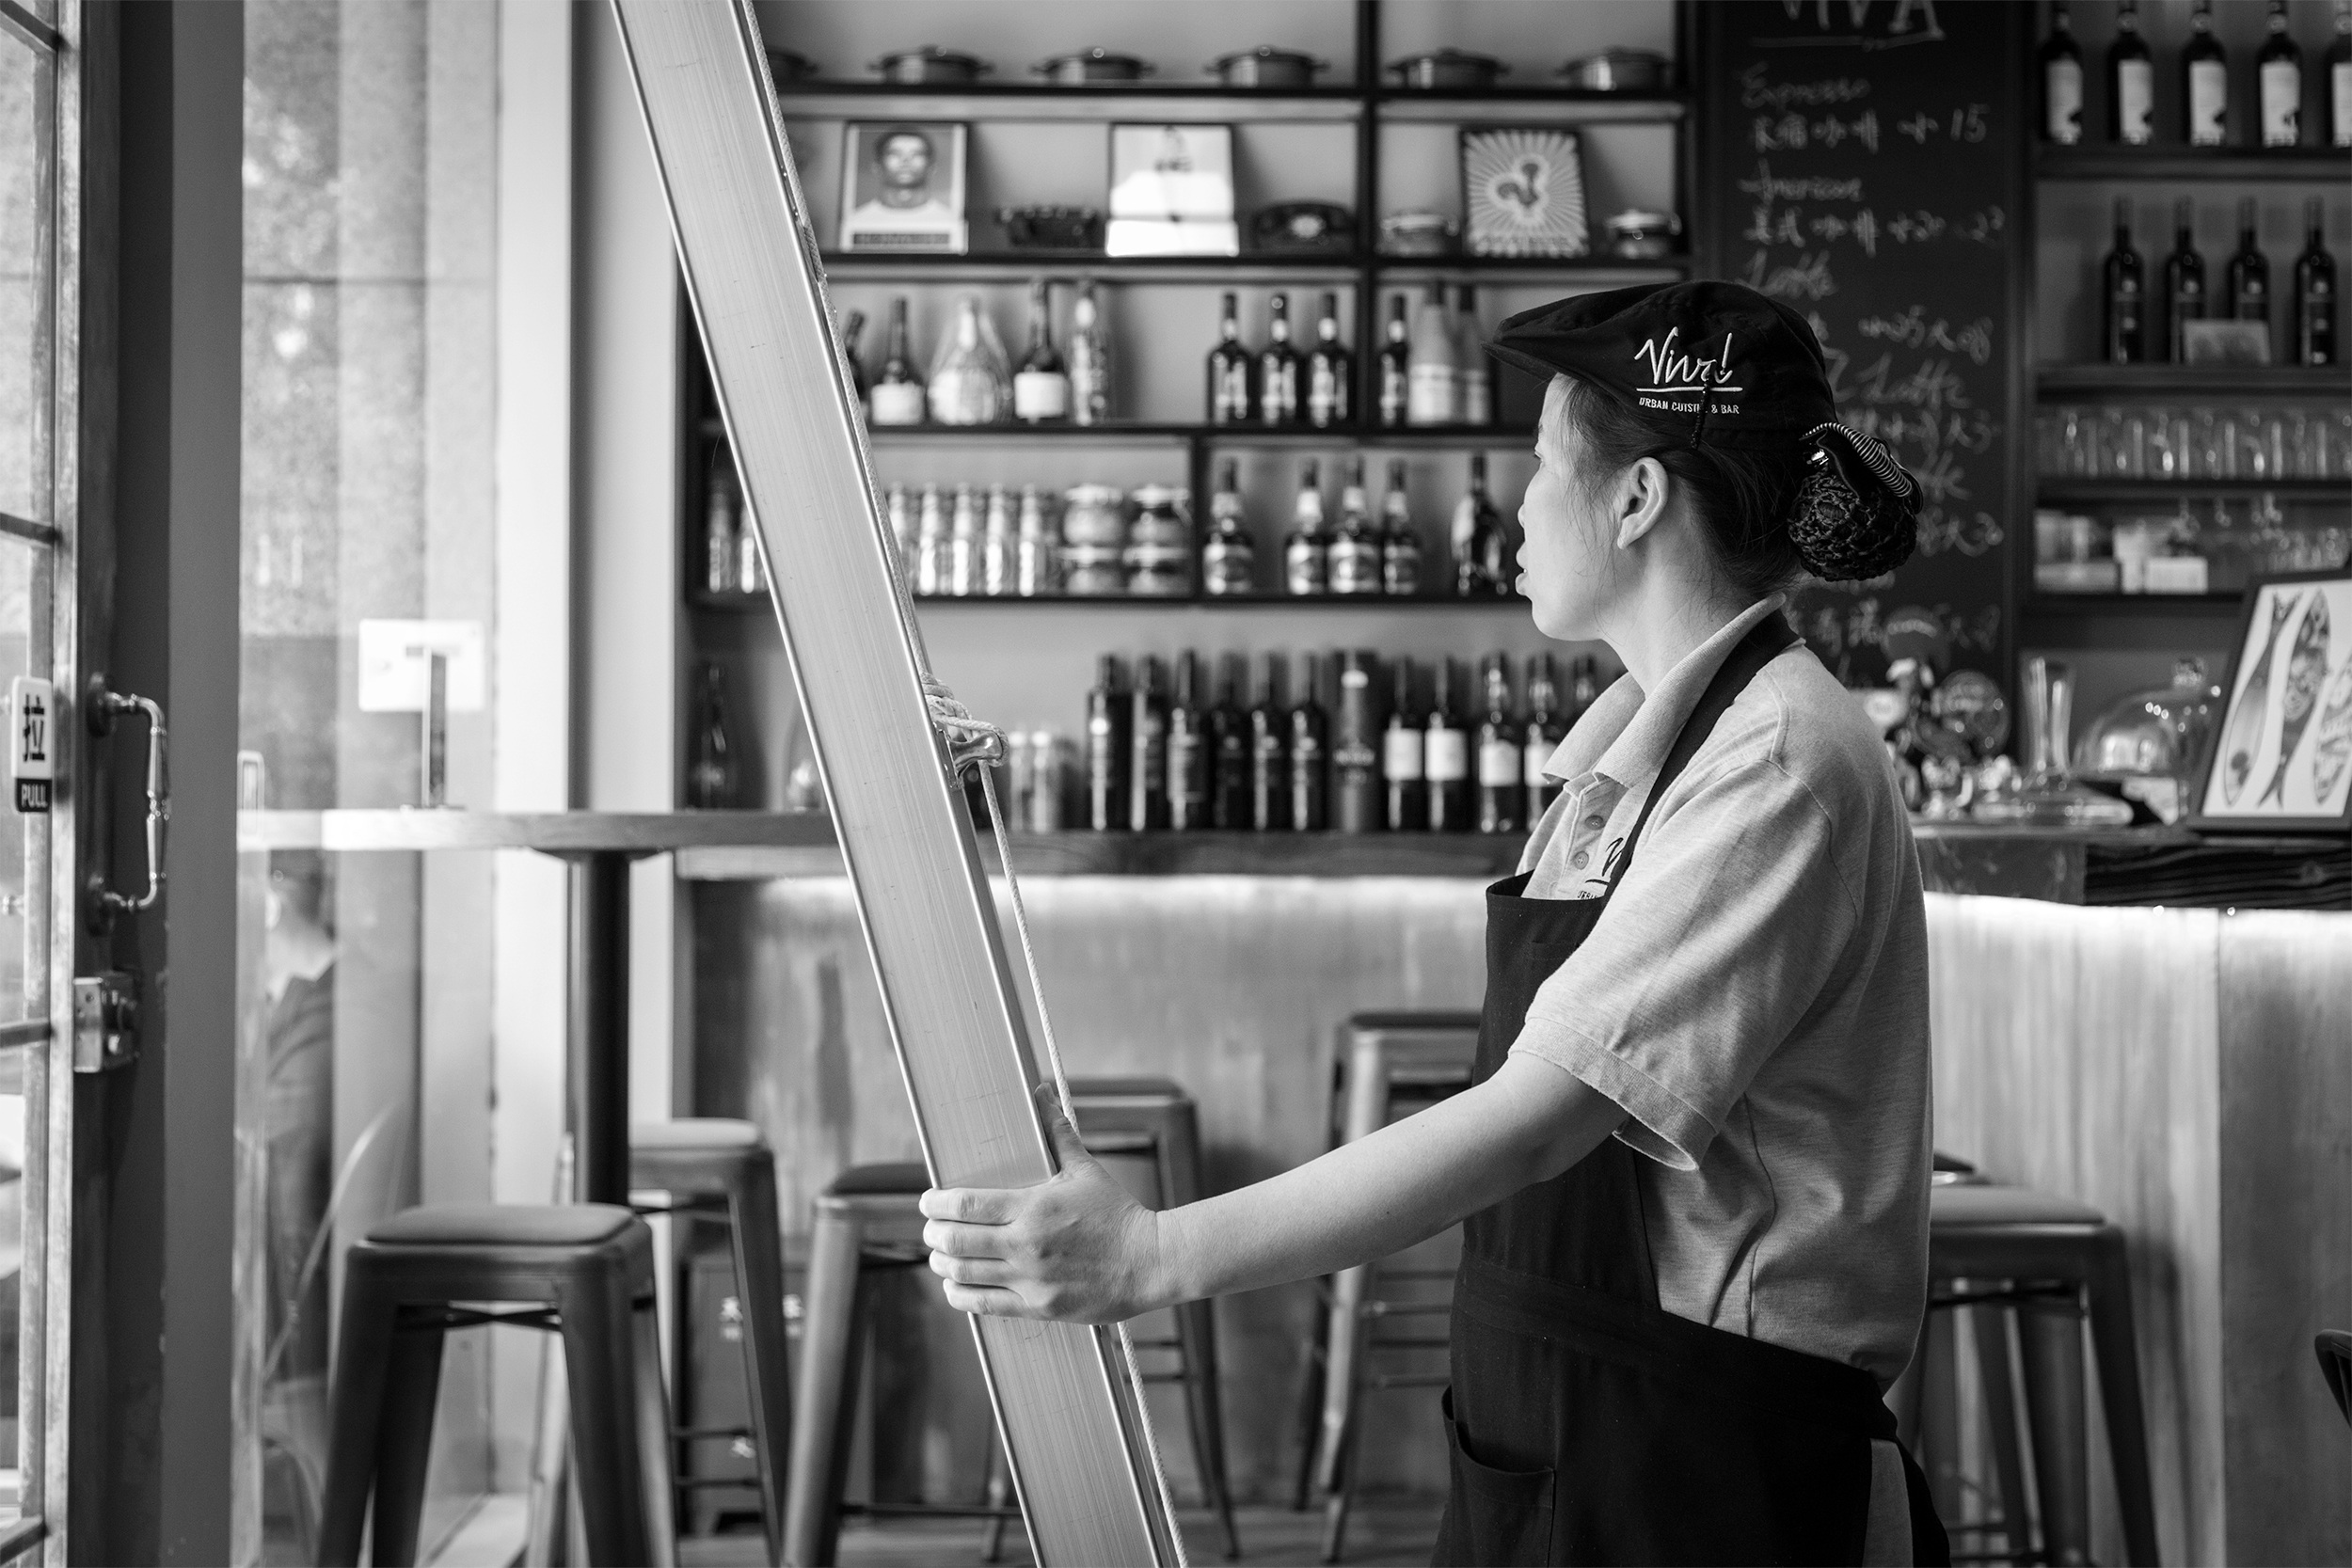 How to Catch and Avoid Employee Theft in Restaurants (Revealed)